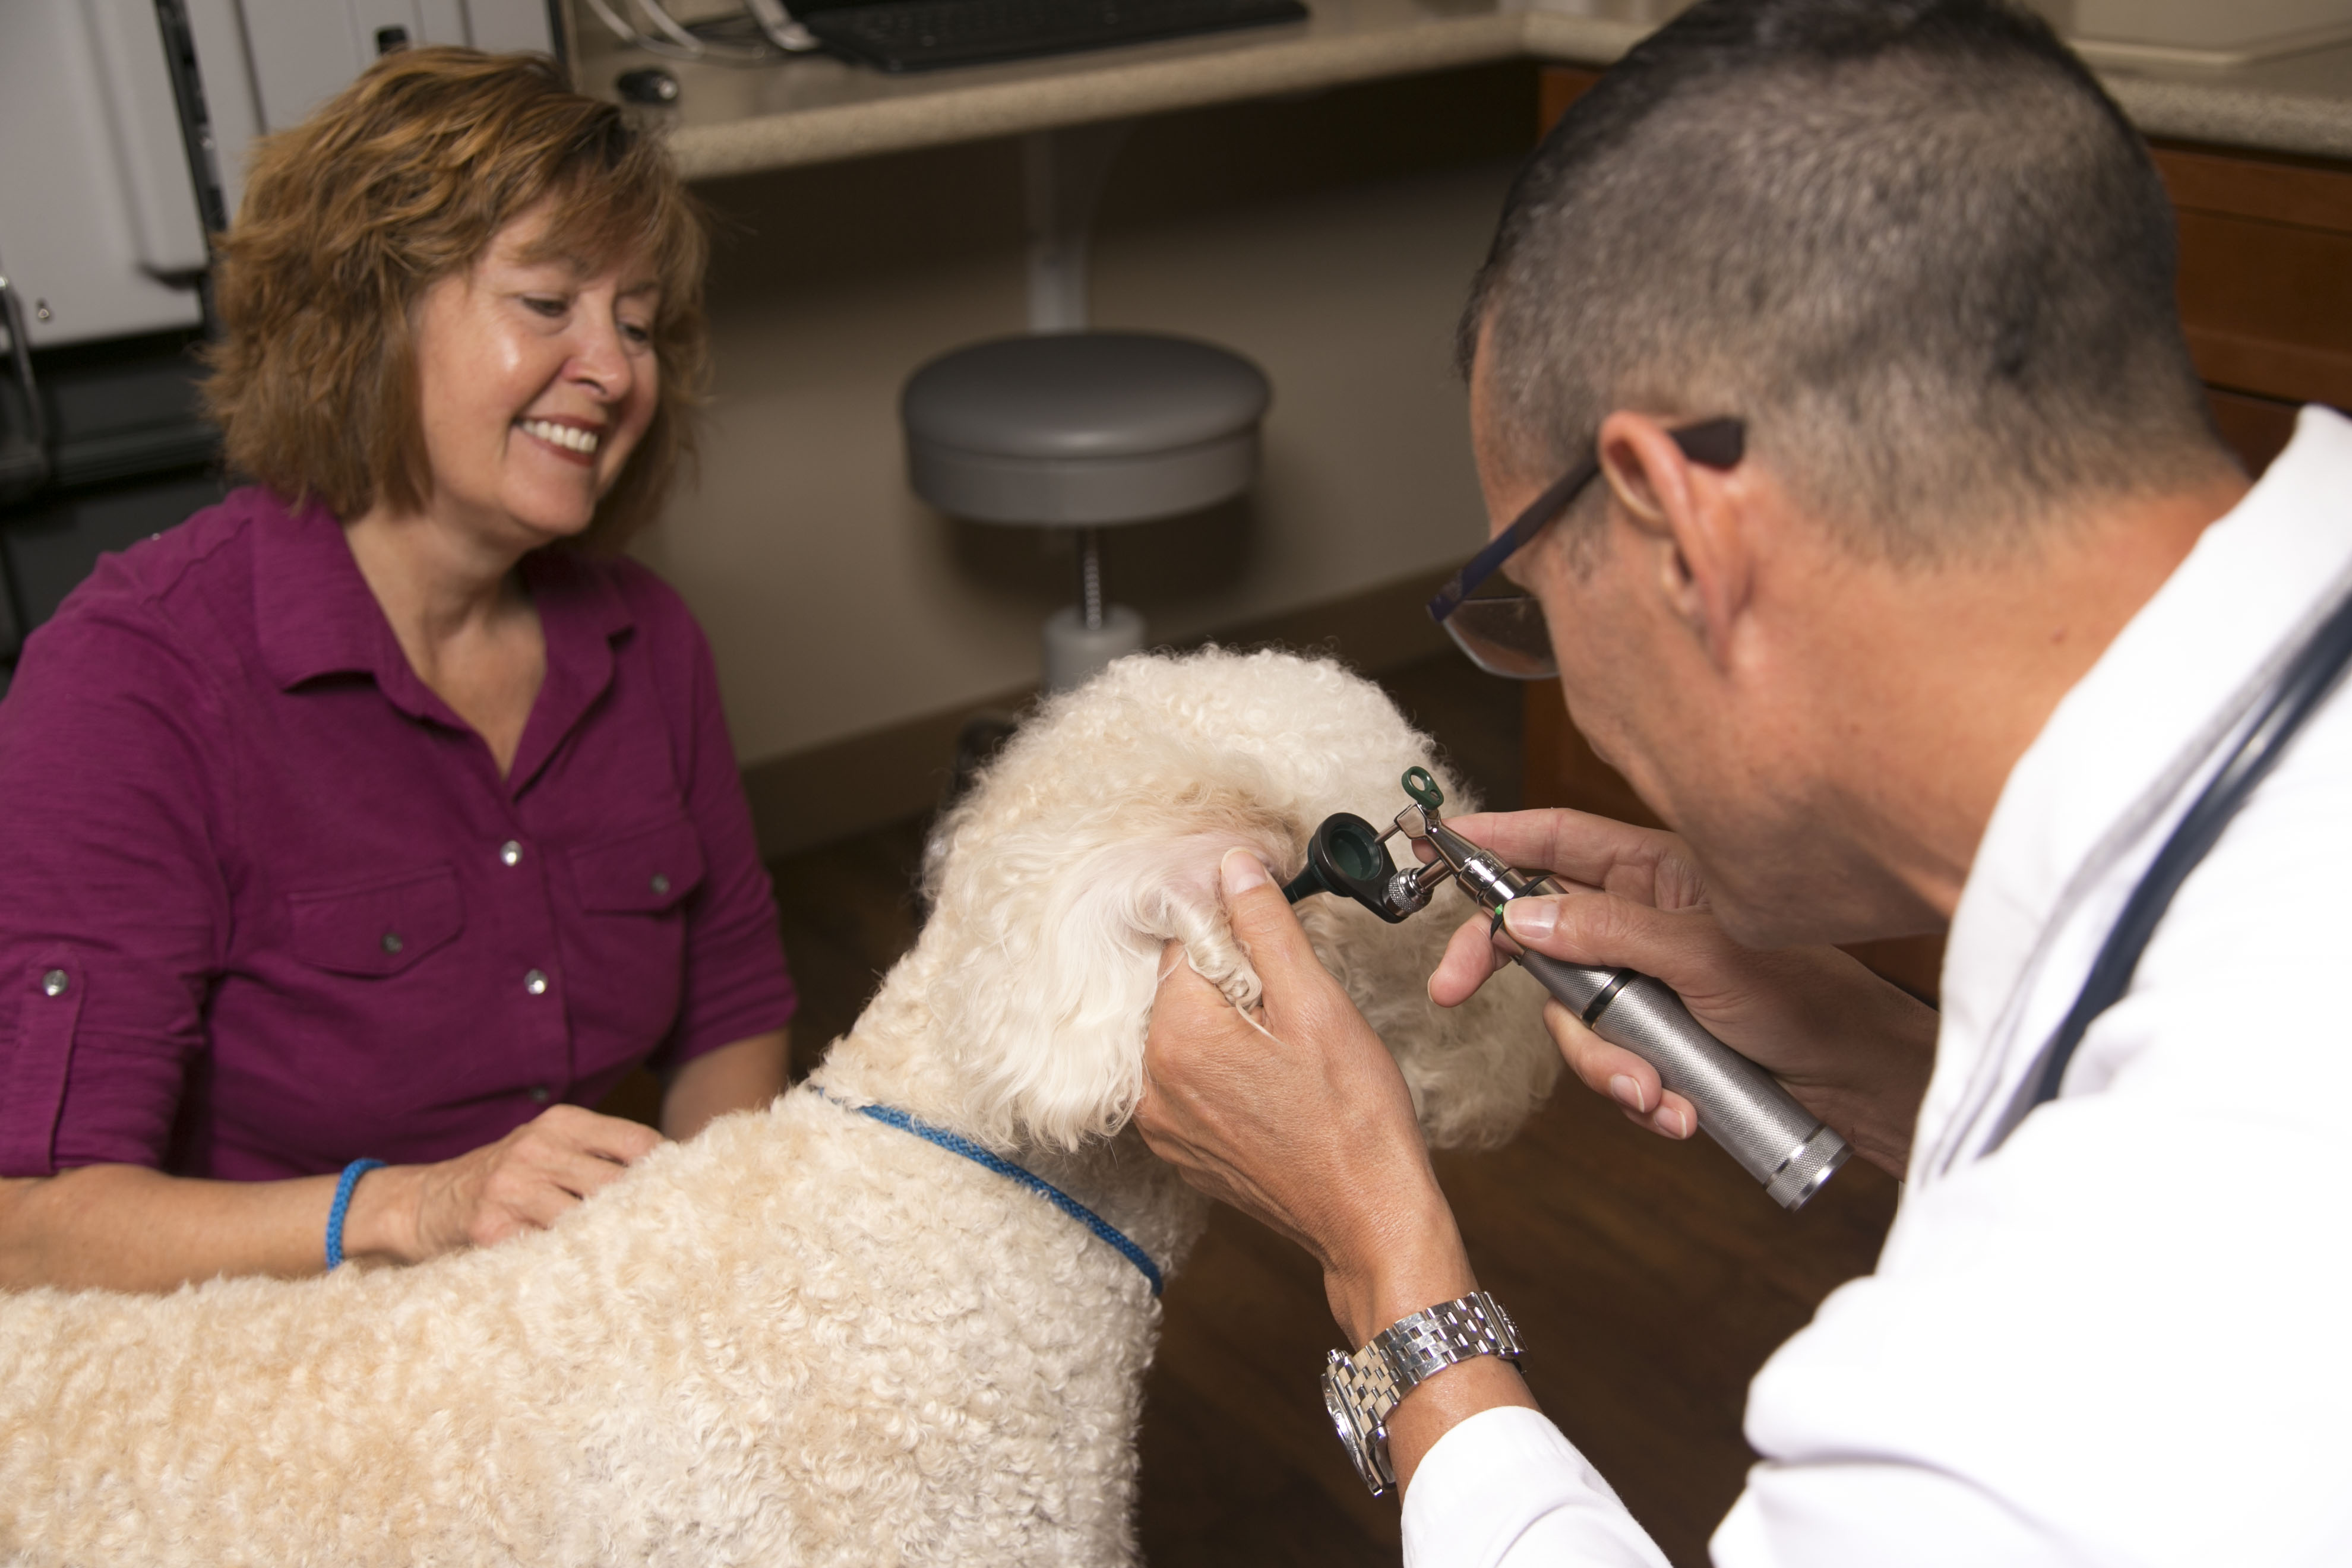 Hannah the Pet Society offers Wellness and Preventive Care Veterinarian Services